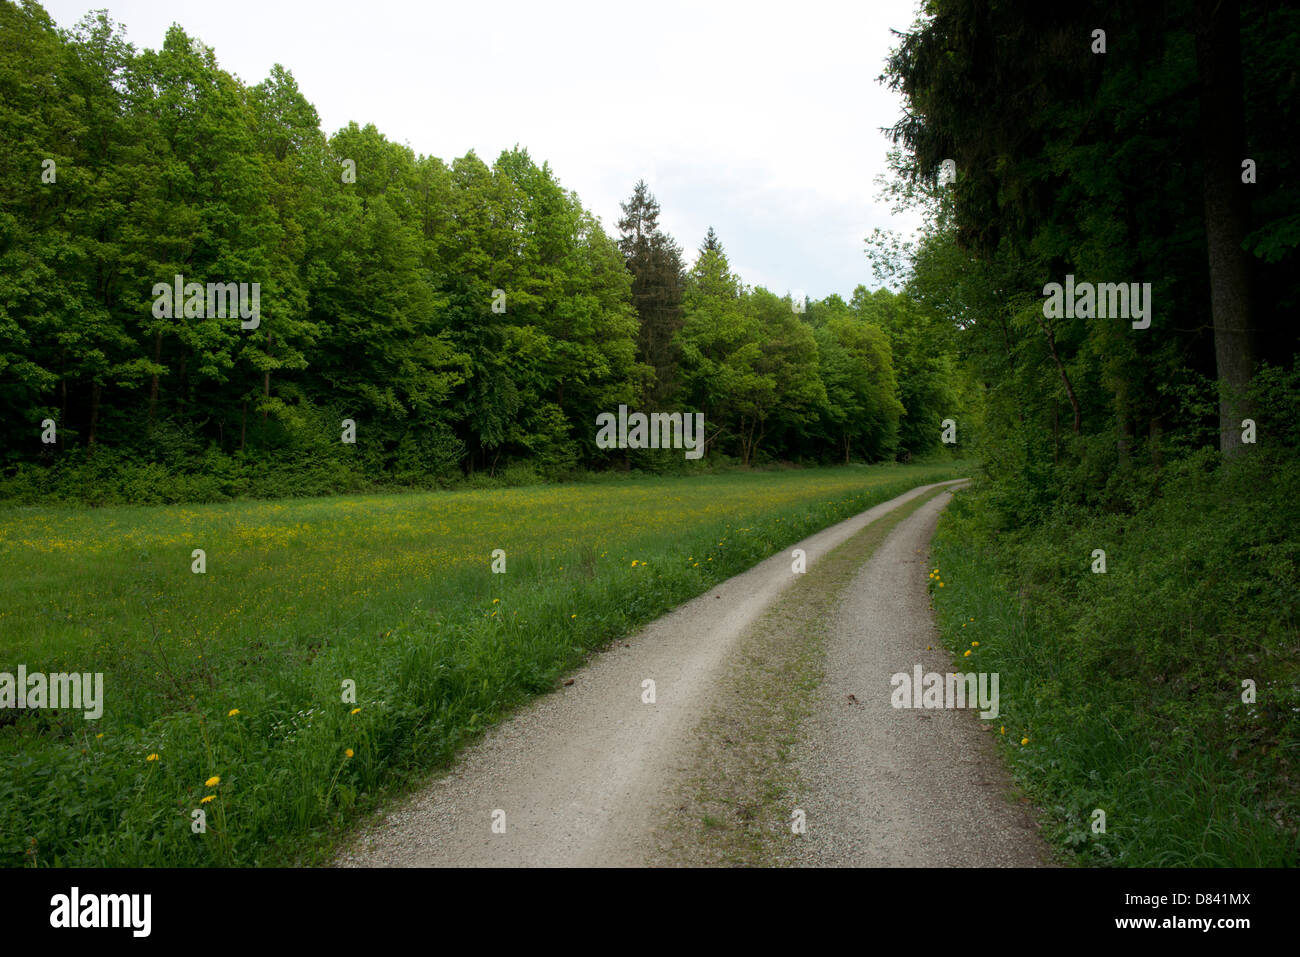 Dirt road alongside a green meadow field clearing in conifer forest in Germany. - Stock Image